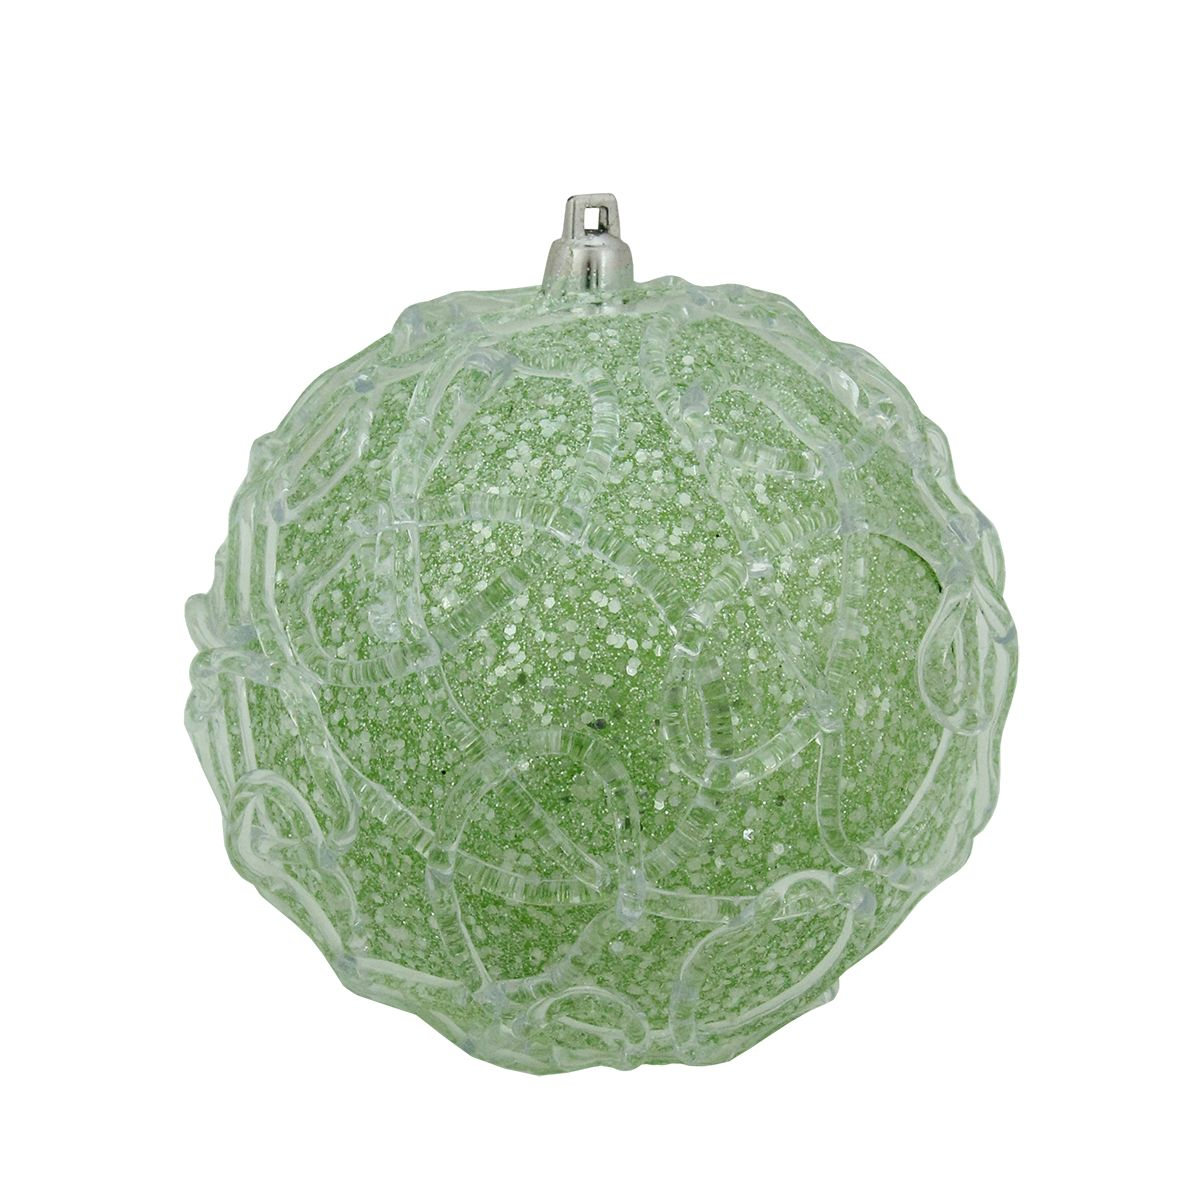 Green Glittered Shatterproof Swirl Christmas Ball Ornament 4 100mm Colorful Christmas Tree Christmas Ornaments Ball Ornaments